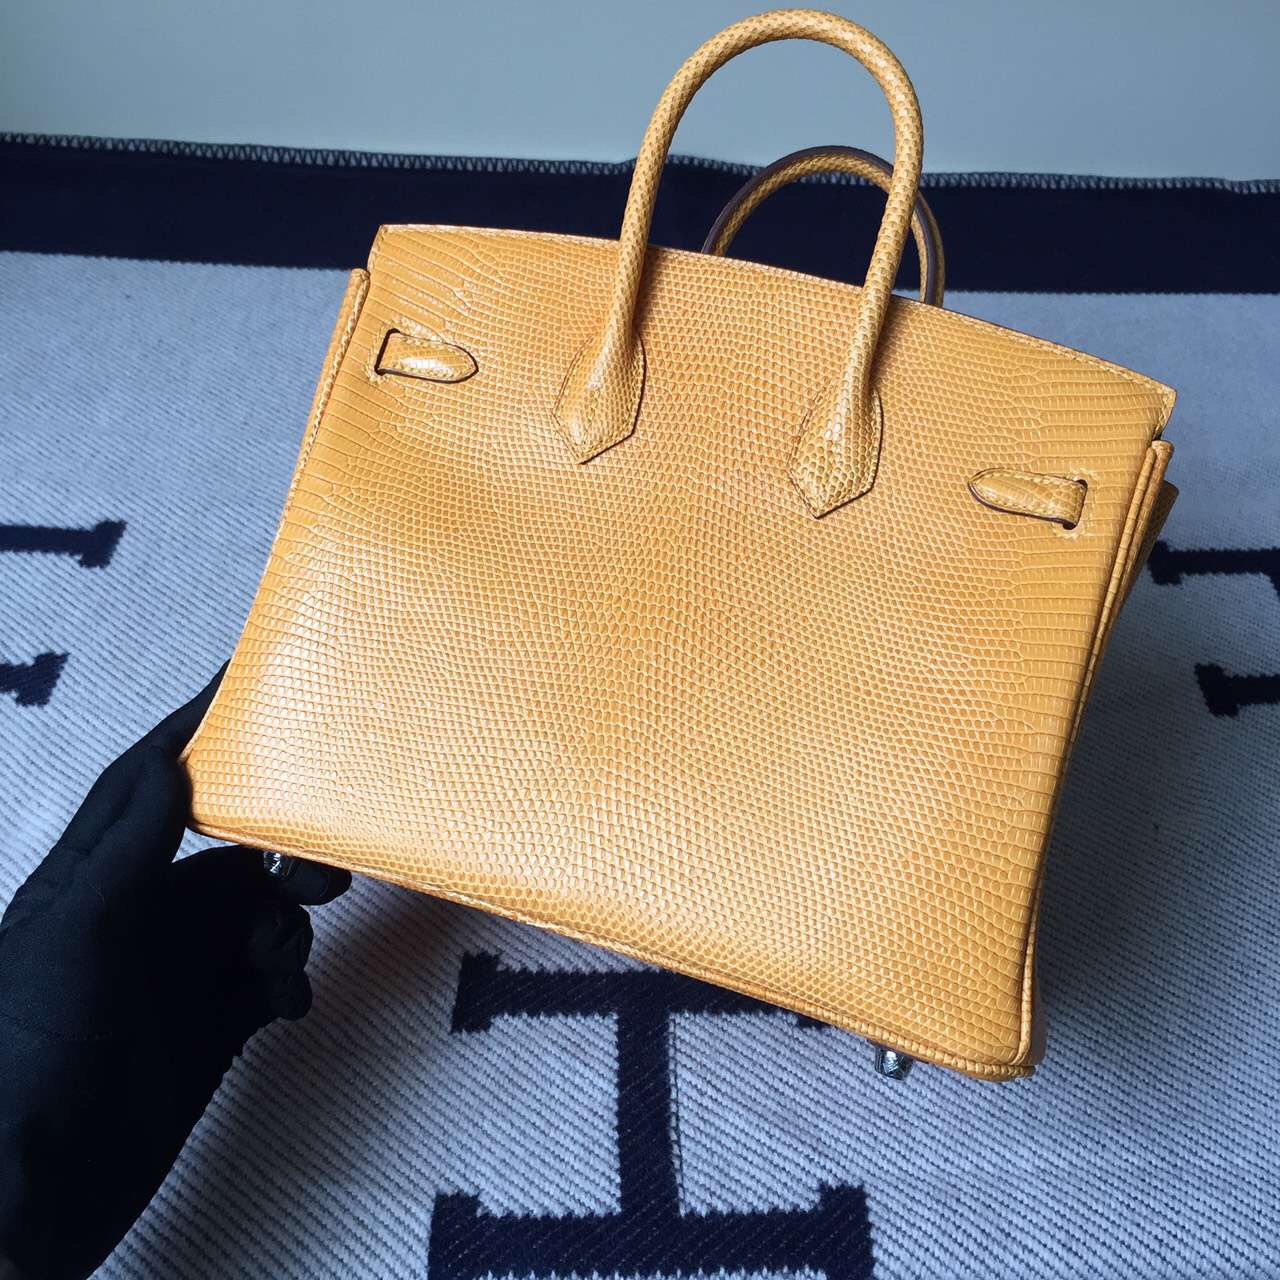 New Arrival Hermes 9V Sun Yellow Lizard Leather Birkin Bag25cm